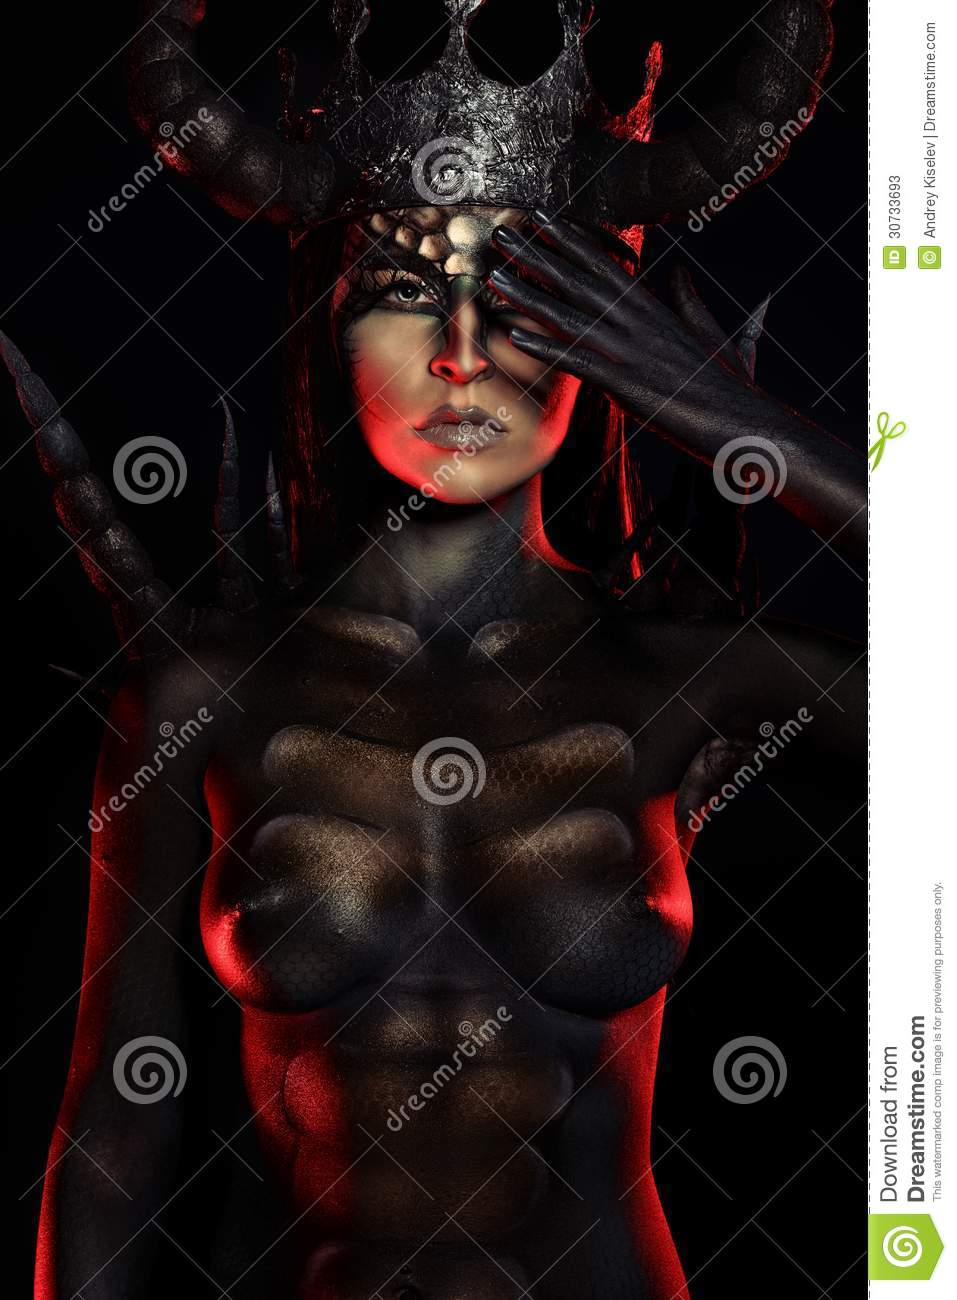 Beautiful and scary devil woman. Art project.